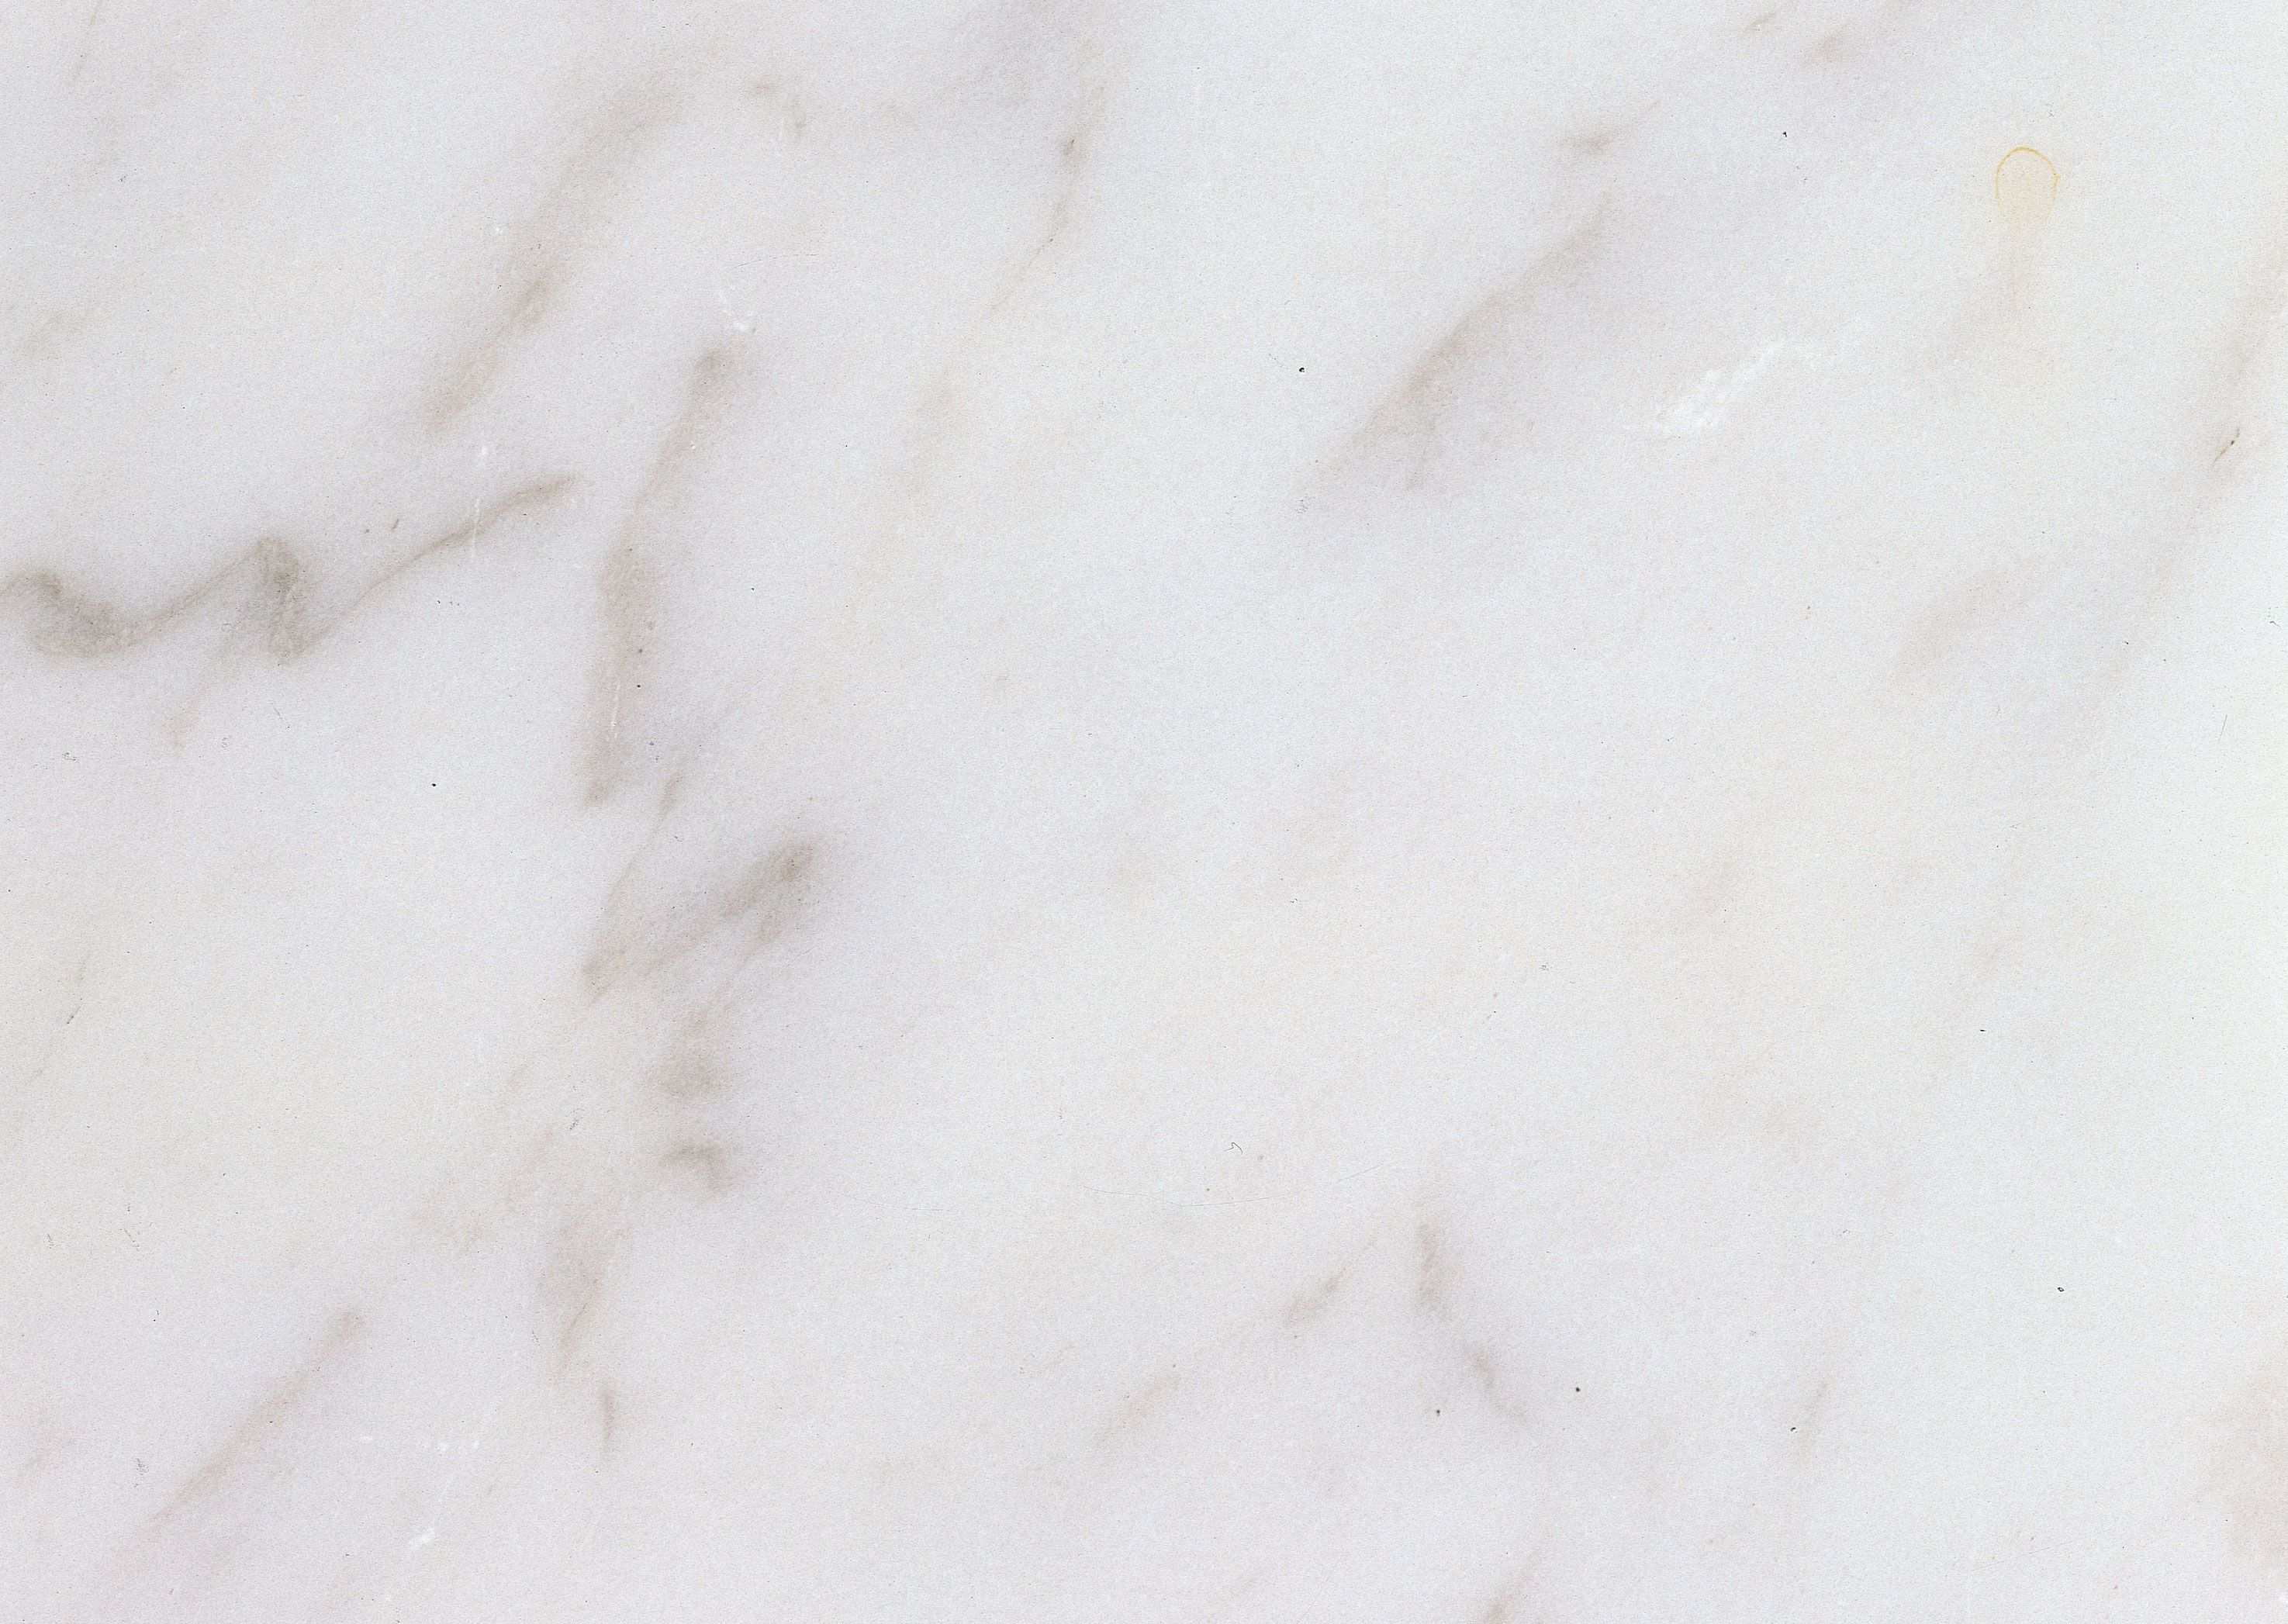 17 Best images about Marble Textures on Pinterest | Marble floor ...